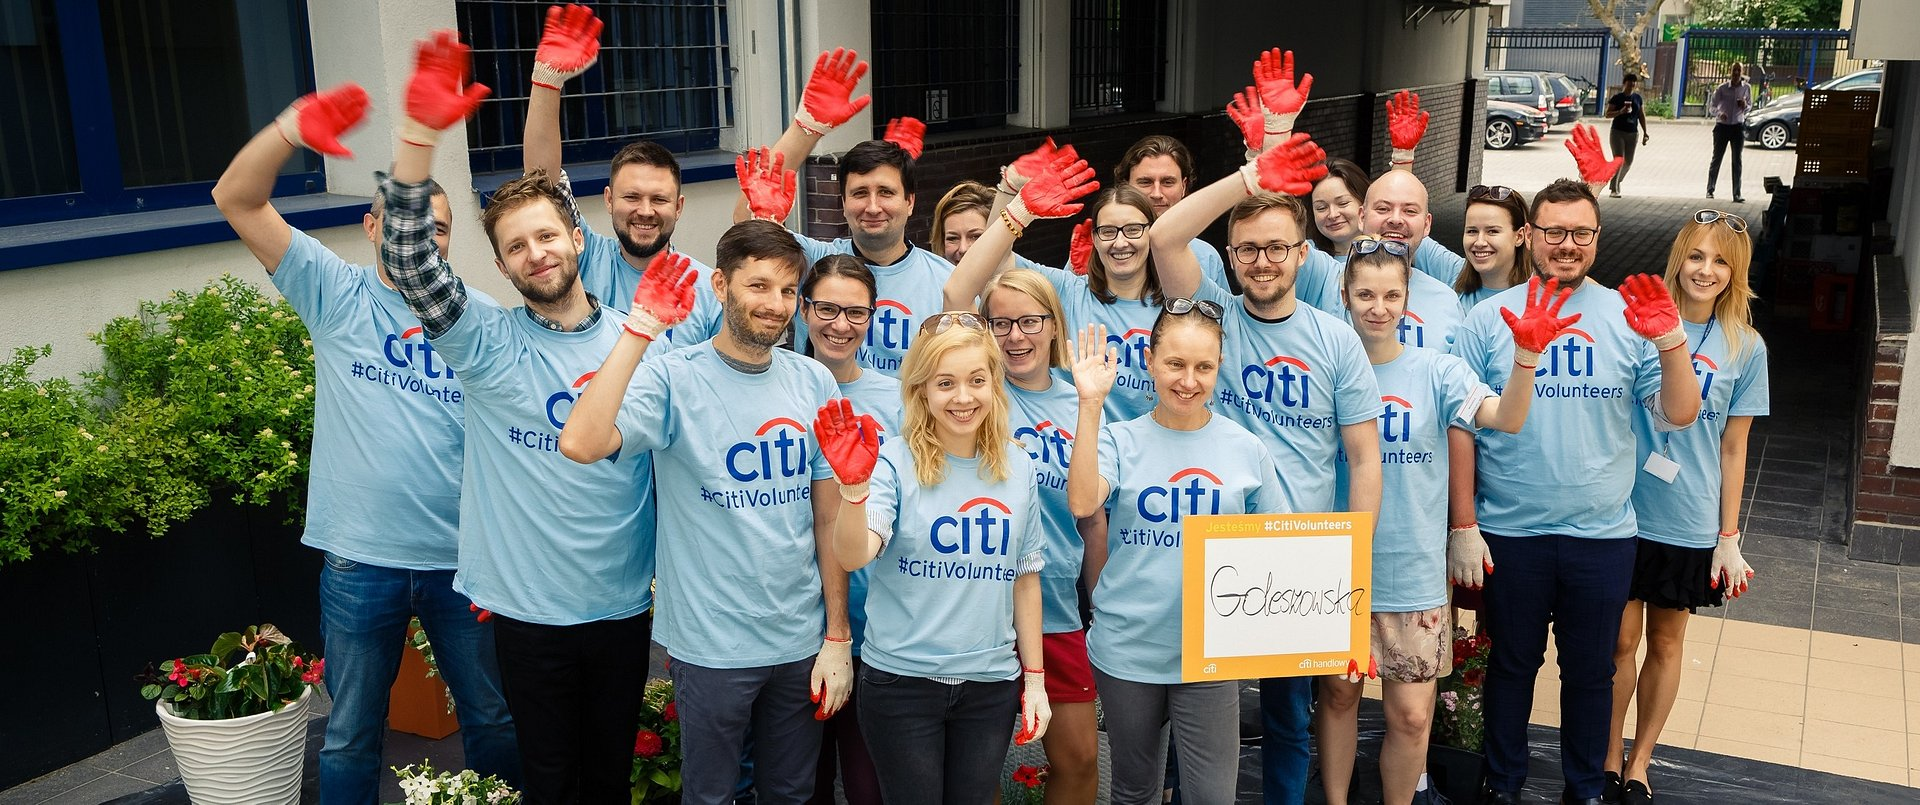 #CitiVolunteers do akcji!